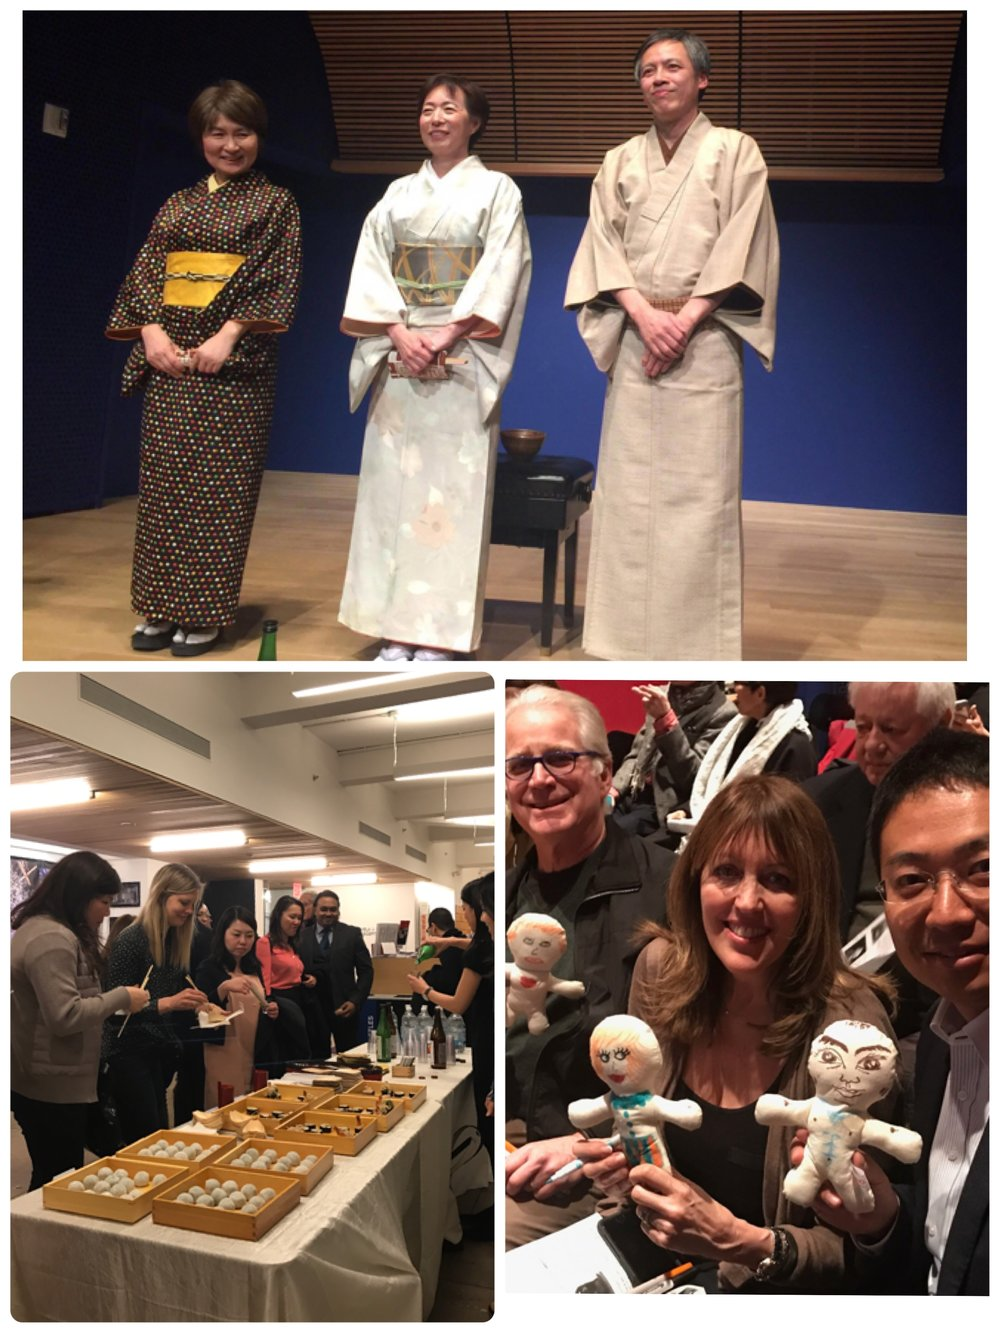 What a fun evening it was!    With your generosity, we raised $2,500+!! Hope everyone enjoyed the Rakugo performance as well as Soba-sushi, Matcha Mochi and Manzairaku Sake. Please visit our photo gallery or FB MSTERIO page to see more pictures. In May and June there are a few exciting events coming up. We cannot wait to see you!   For further information, visit our FB page as well as our Blog page. Any and all ideas where to send MSTERIO dolls to,  we'd love to hear from you!